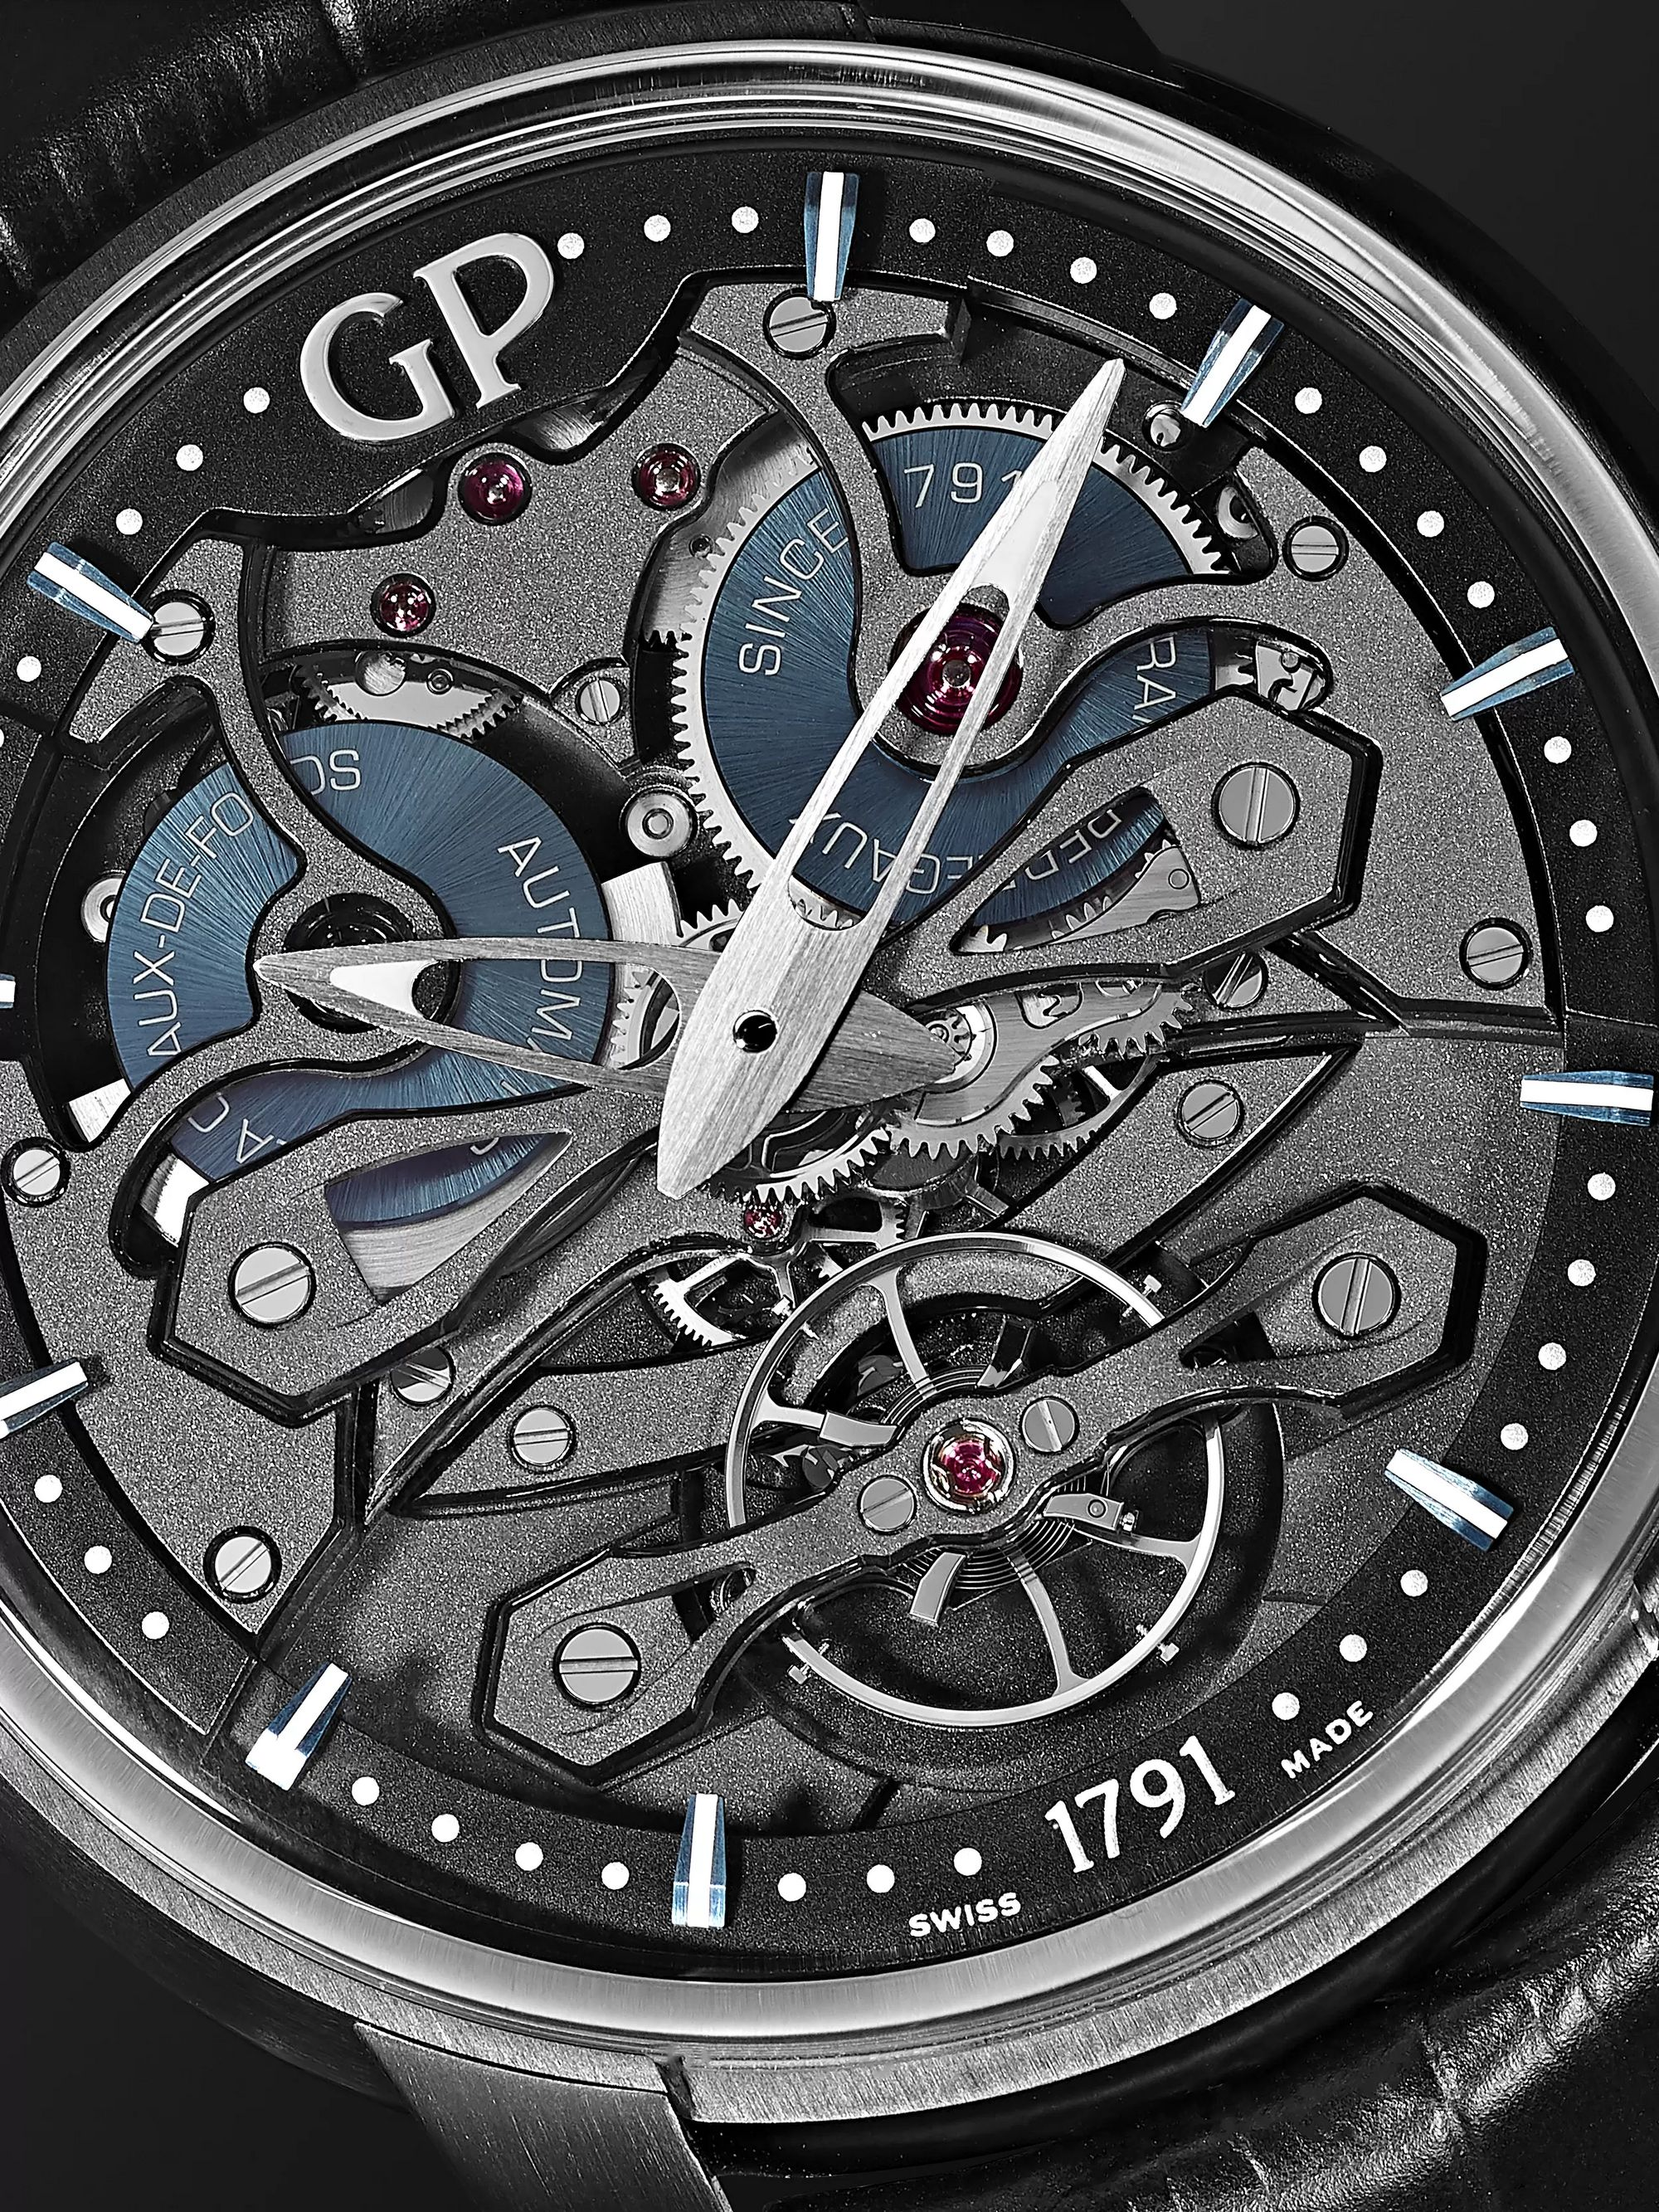 GIRARD-PERREGAUX Neo Bridges Earth to Sky Automatic 45mm Titanium and Alligator Watch, Ref. No. 84000-21-632-BH6A